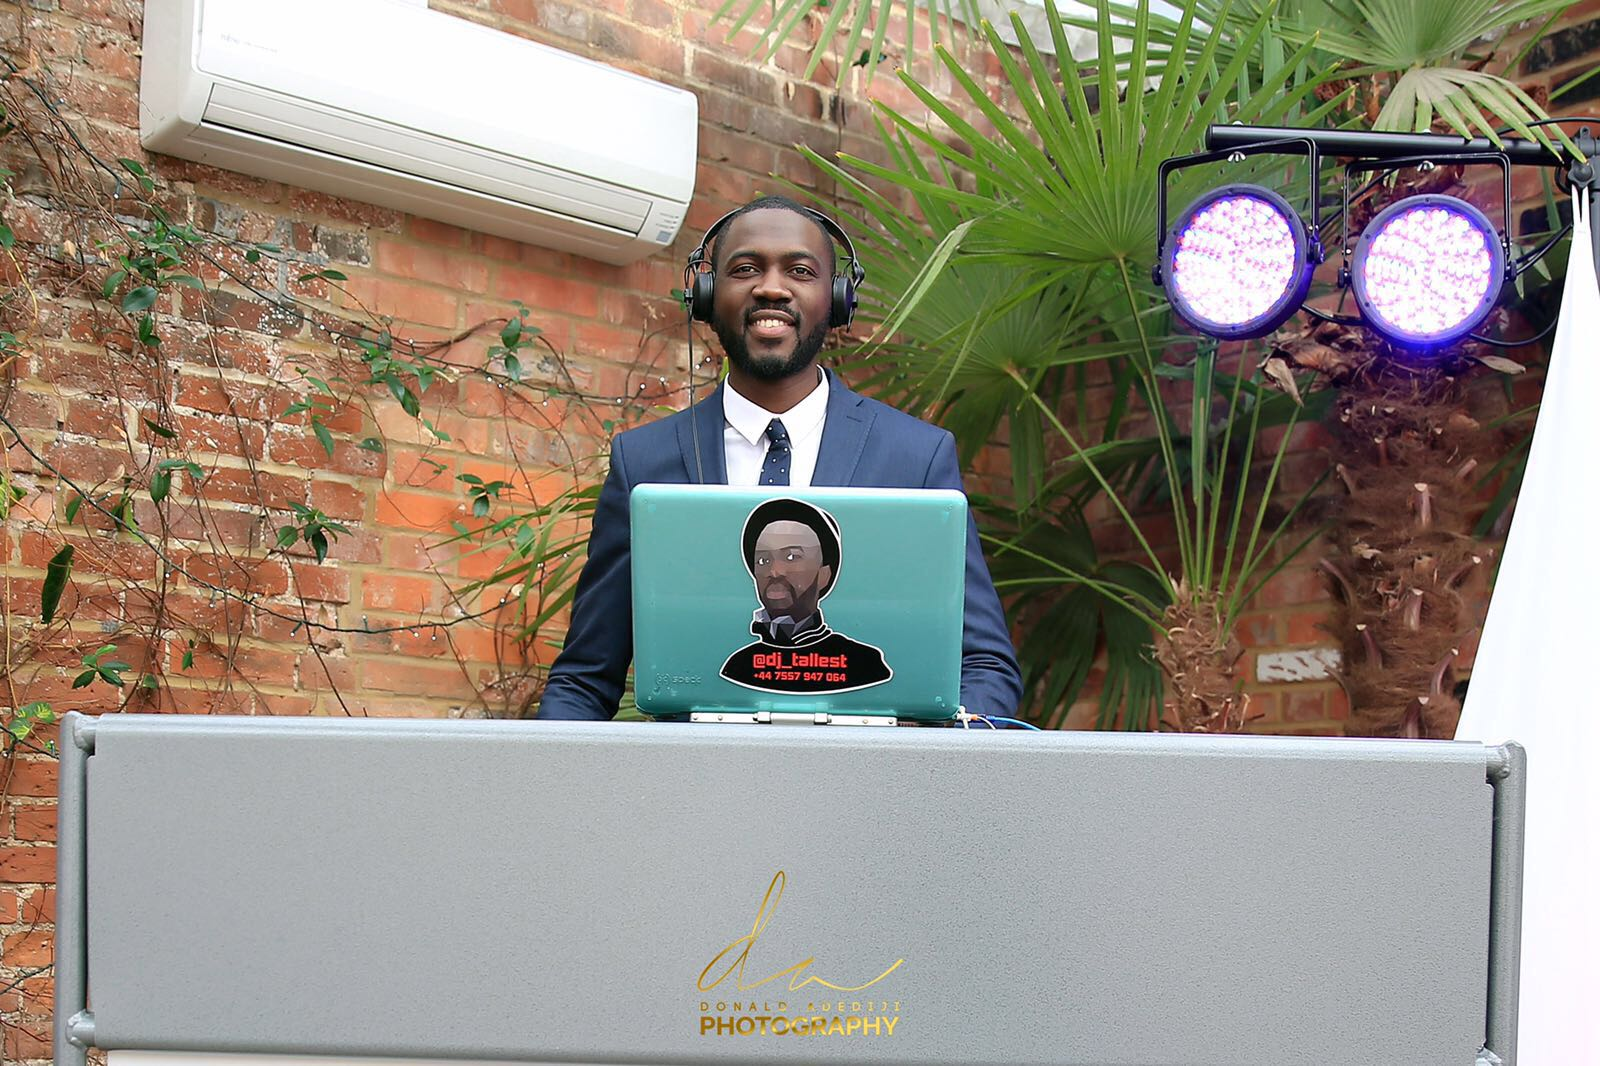 DJ Services - DJ Services for your event handled by an experienced 'Giant In The Game'. DJ Tallest will take your event to another level by providing excellence, experience and top-of-the-range sound equipment. Click below to find out how to make your next event phenomanol.